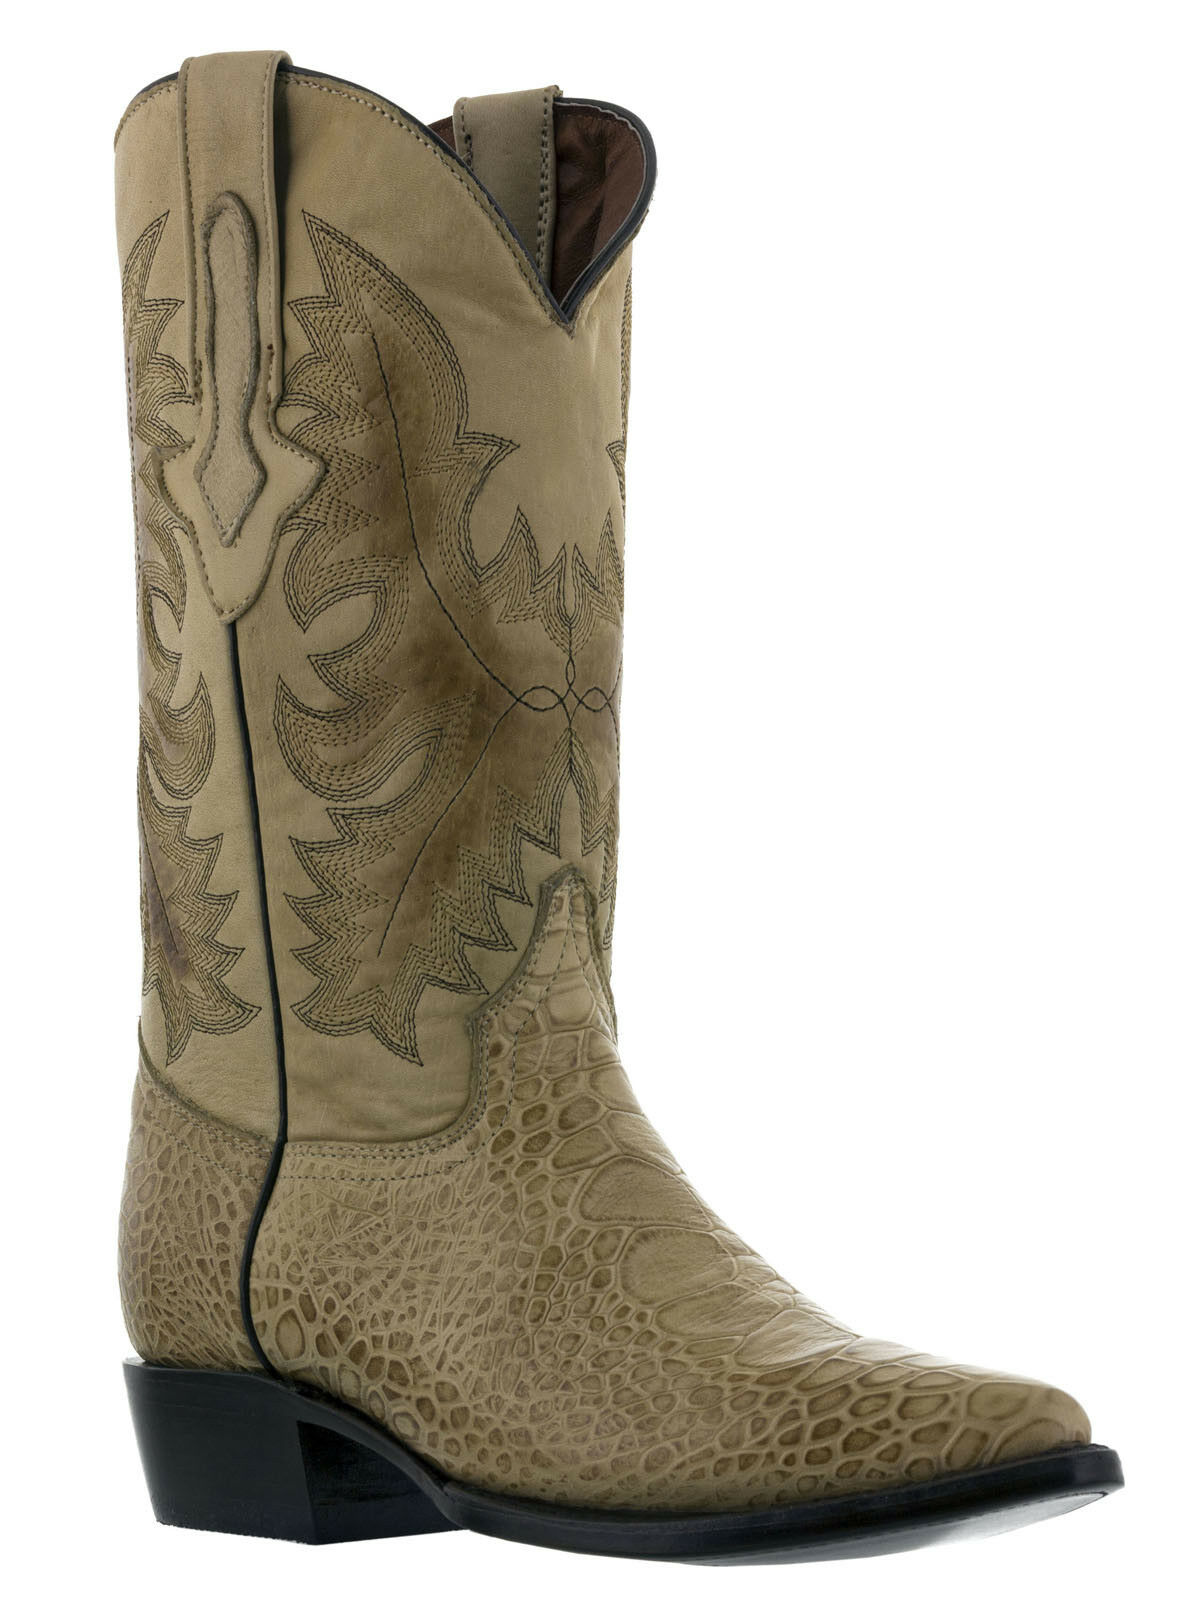 Mens Beige Crocodile Alligator Belly Sea Turtle Print Rodeo Cowboy Leather Stiefel